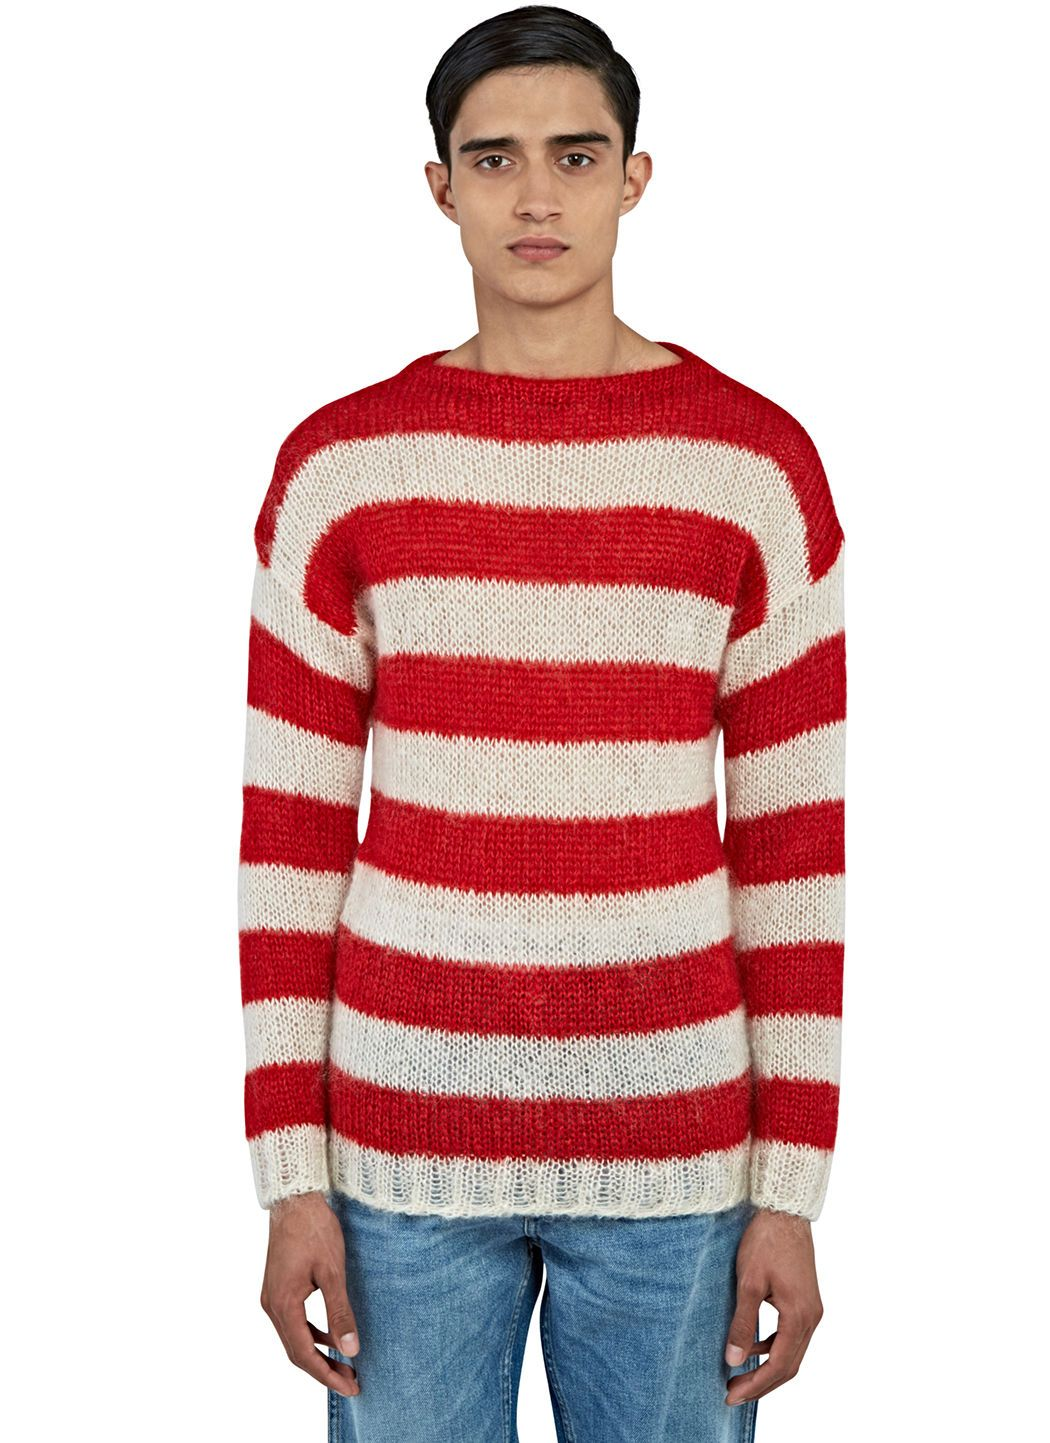 GUCCI Men'S Striped Mohair Knit Sweater In Red And White. #gucci ...